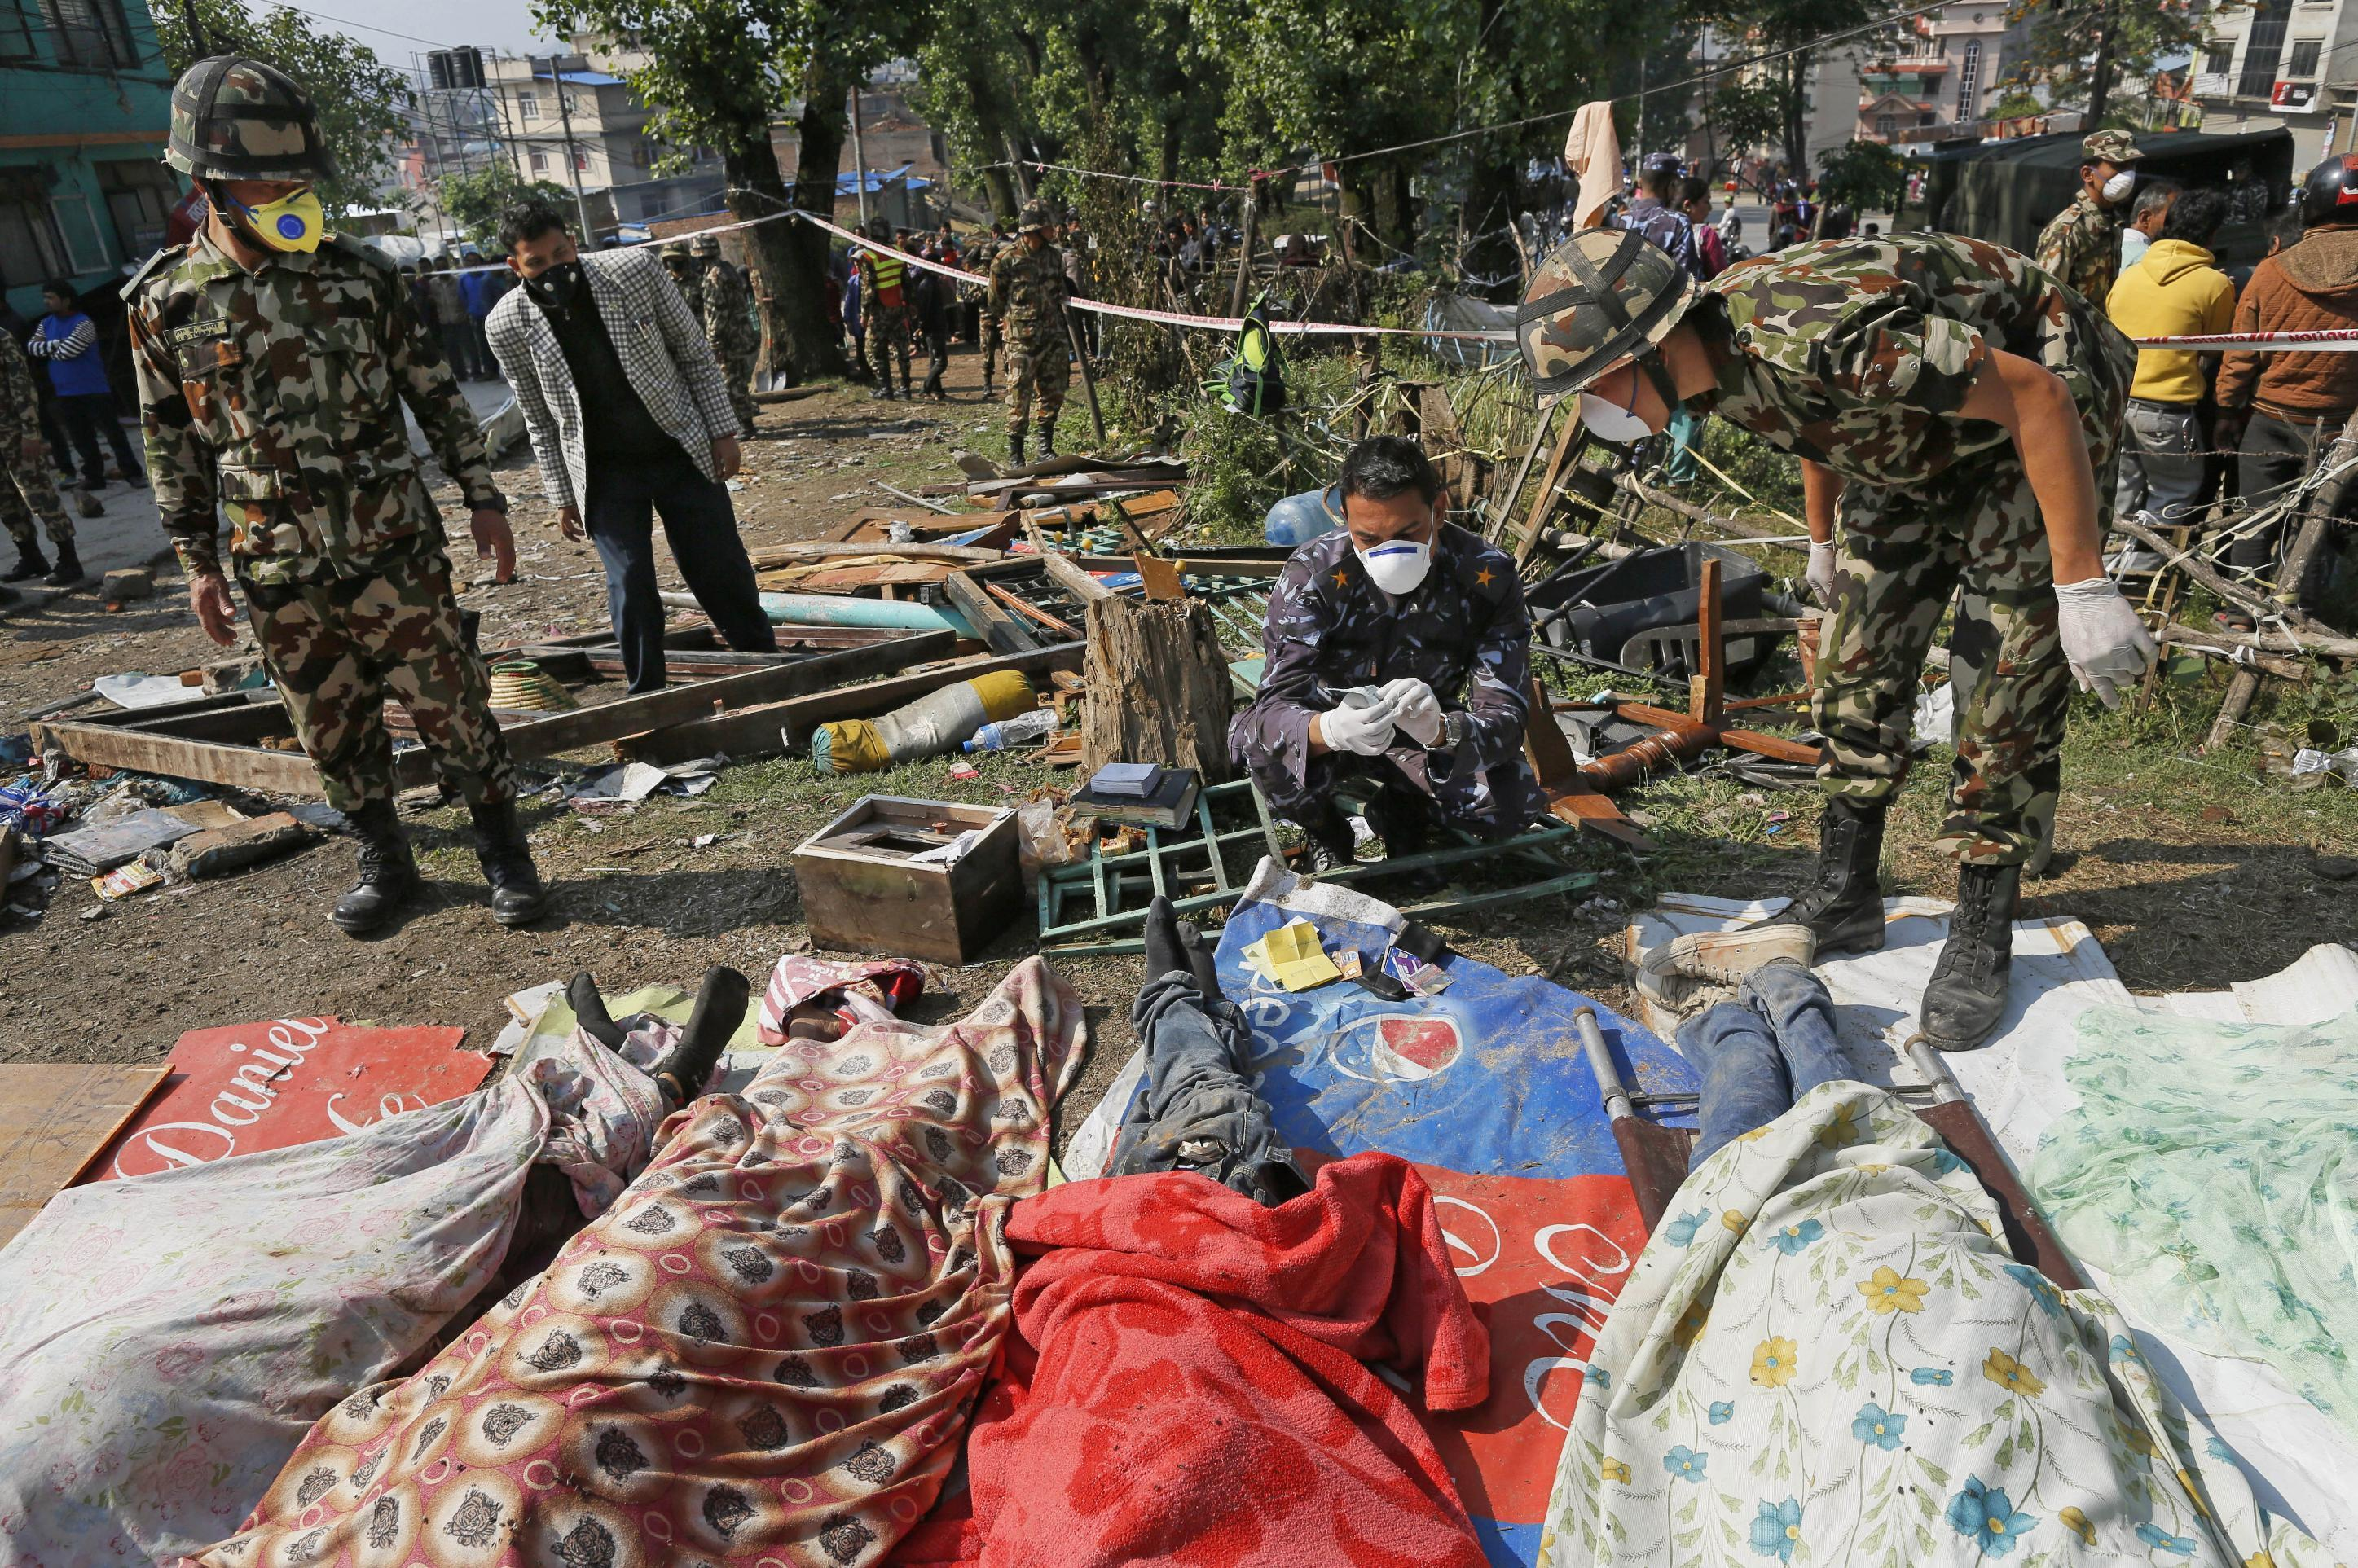 Deaths rise, aid flown in after Nepal quake: Things to Know